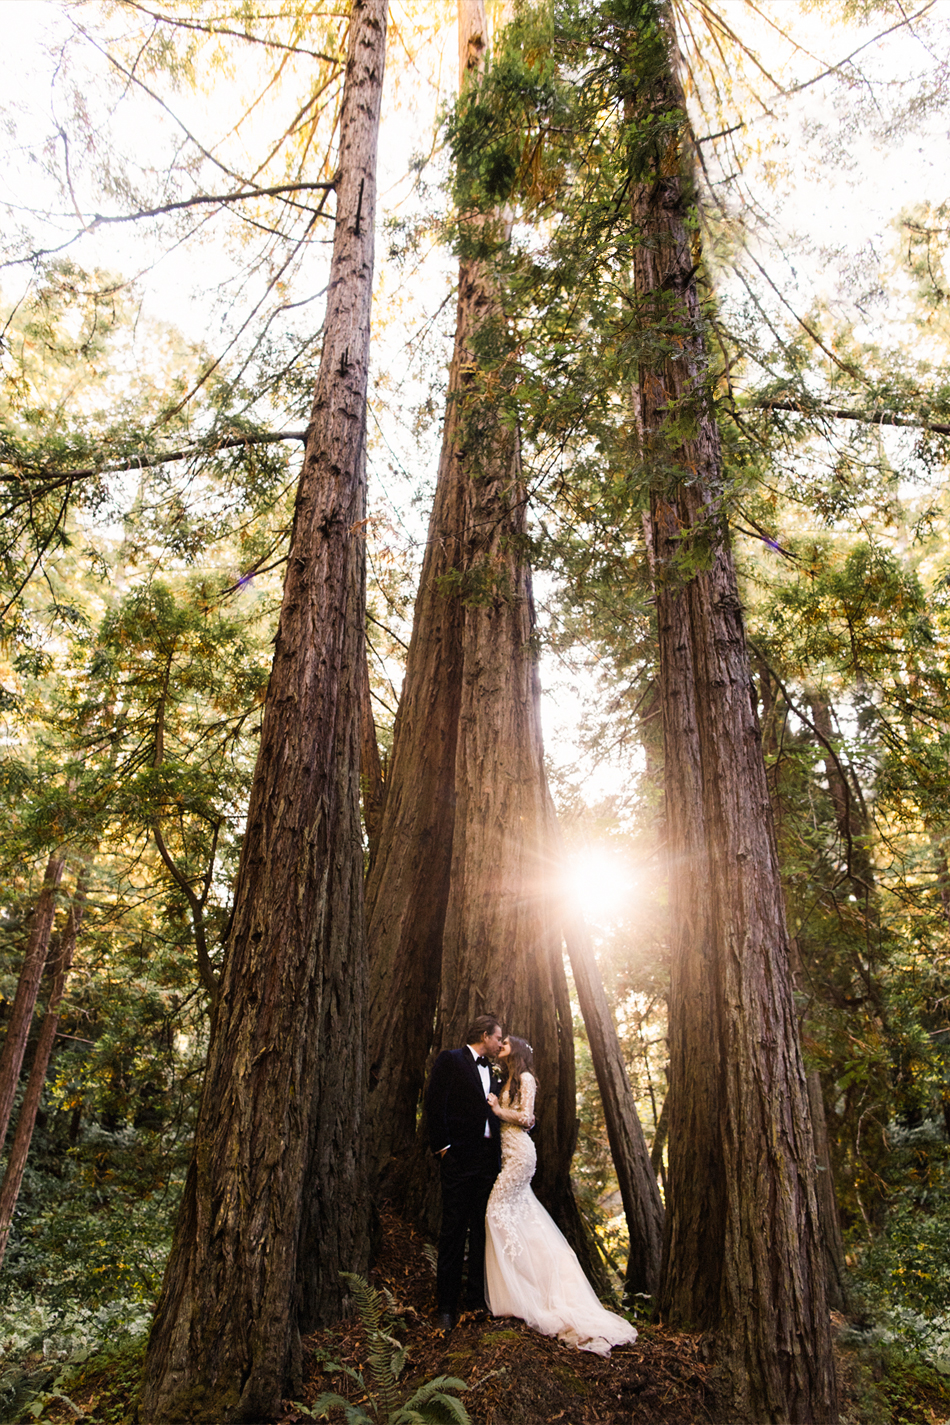 bride and groom standing in forest under tall trees